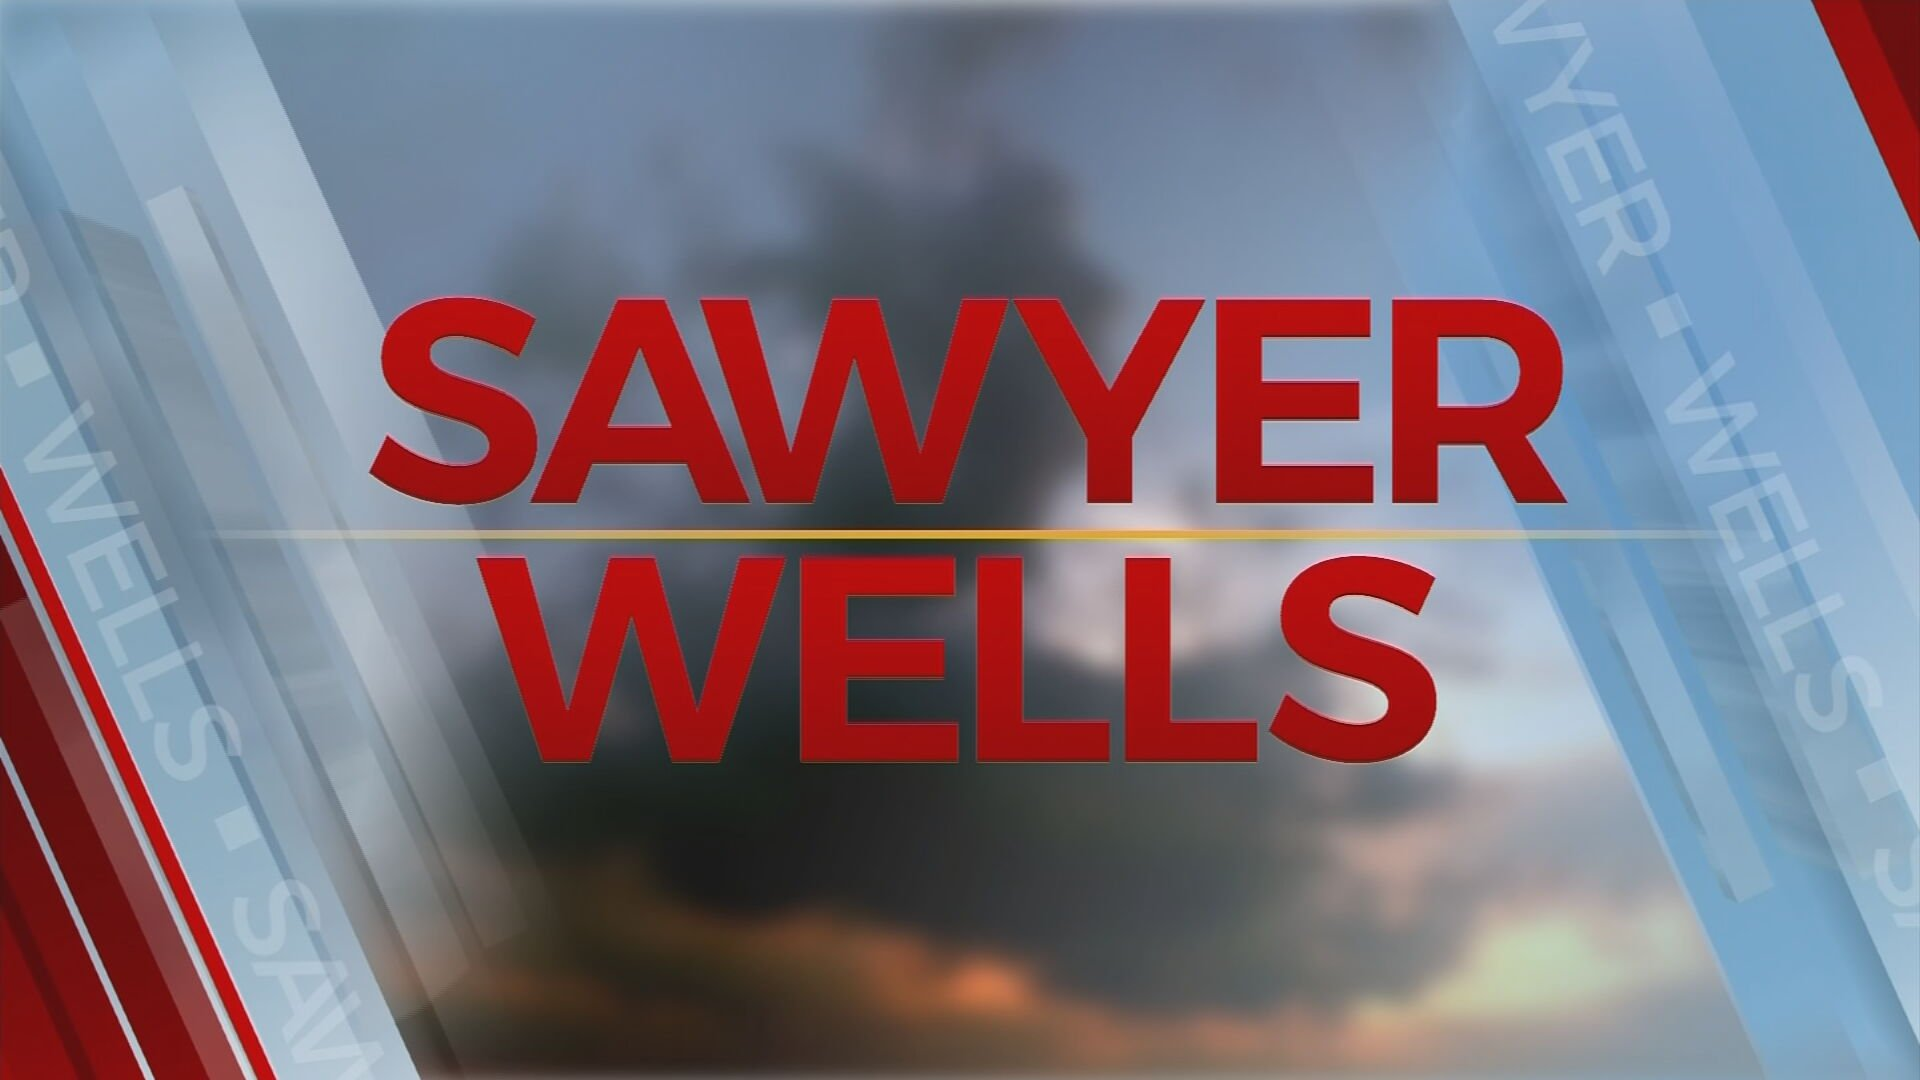 Friday Forecast With Sawyer Wells